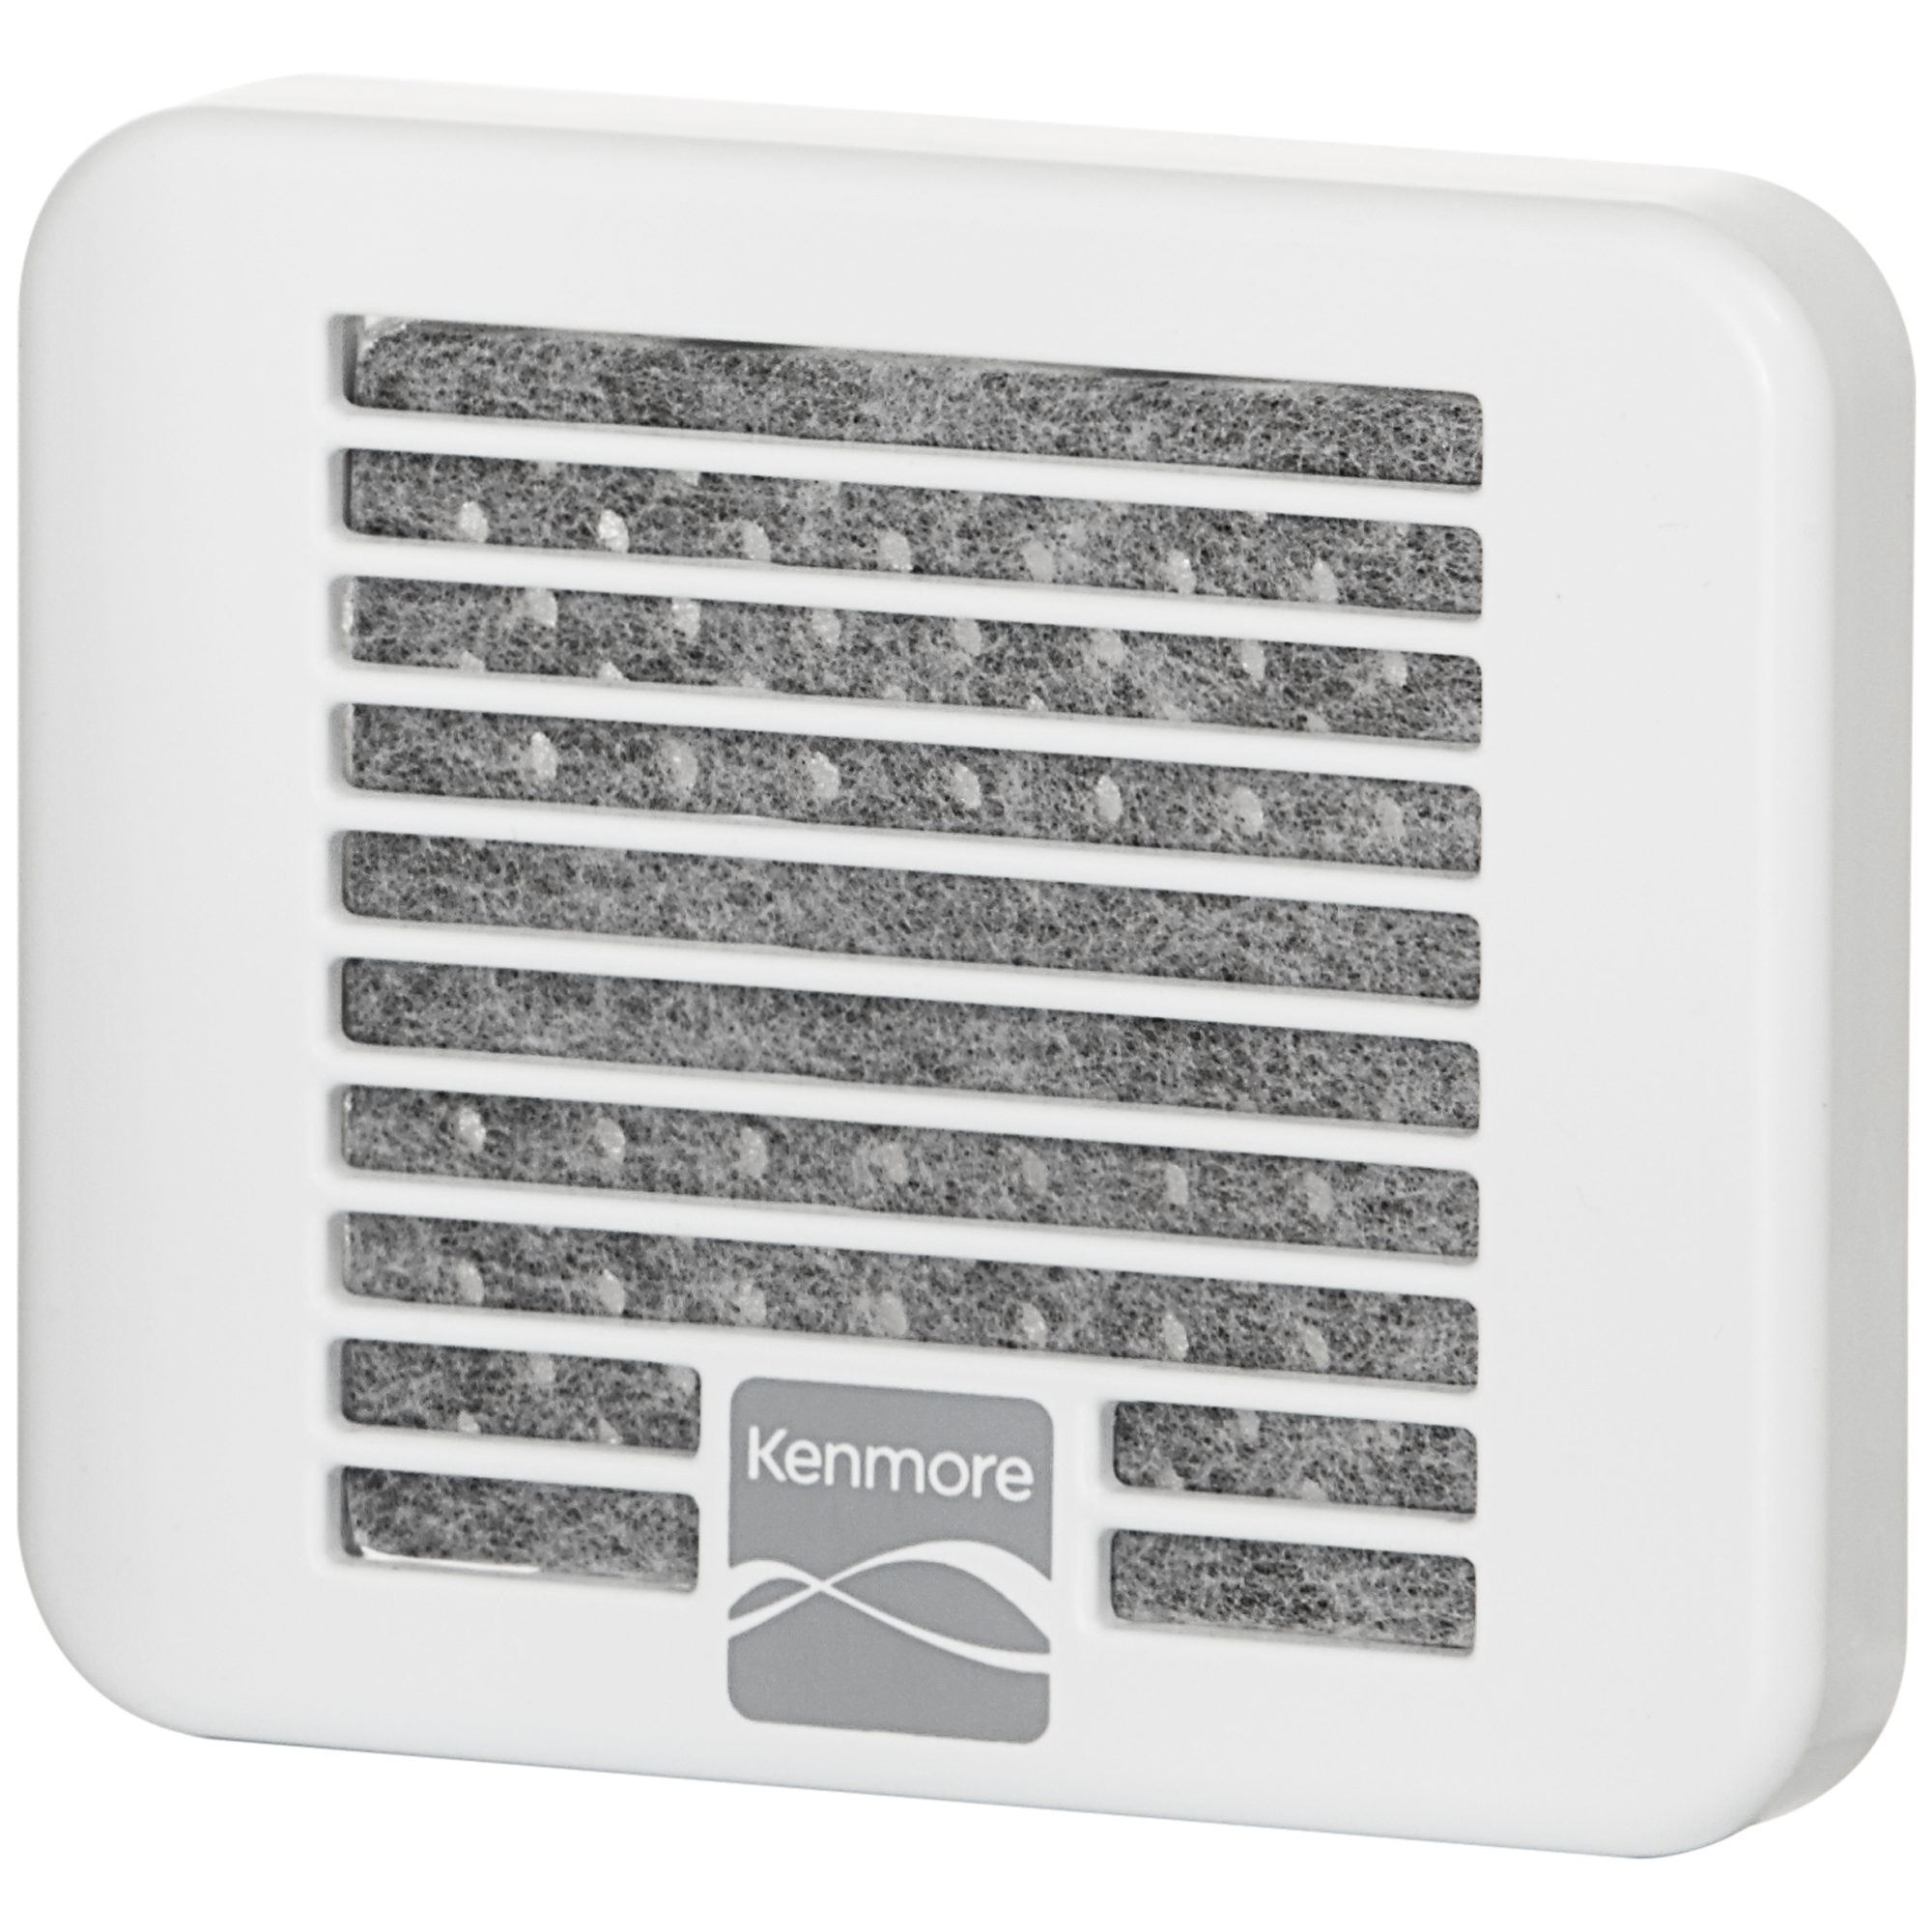 Kenmore 9923 Passive Charcoal Air Filter Kit for Refrigerators